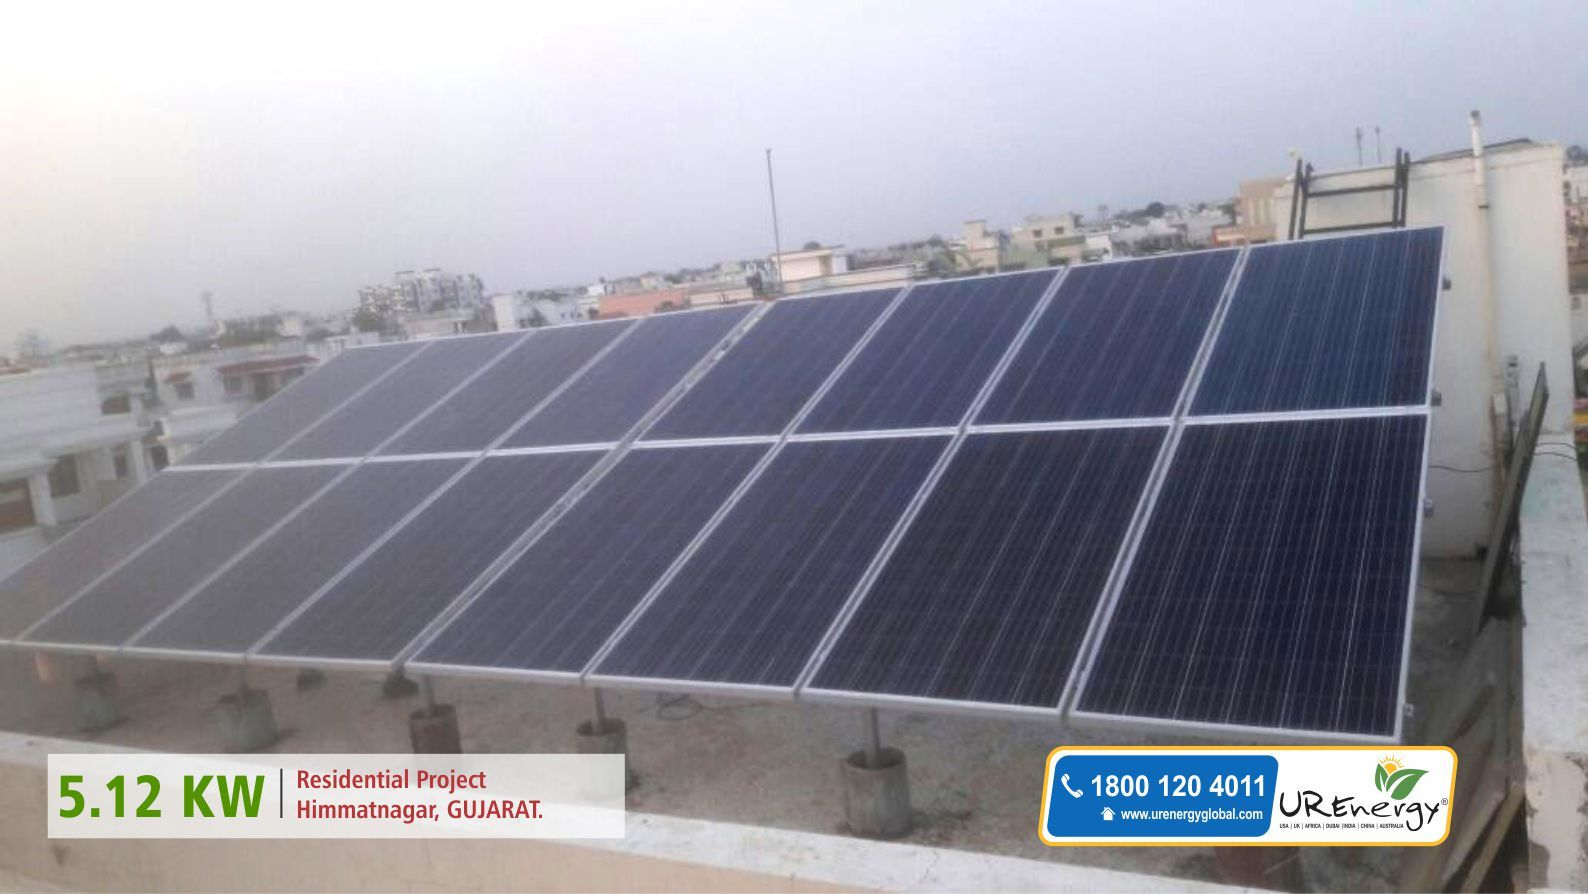 Rooftop Solar Panel Inverters Water Pump Solar Epc Gujarat India U R Energy Solar Water Pump Solar Renewable Energy Companies